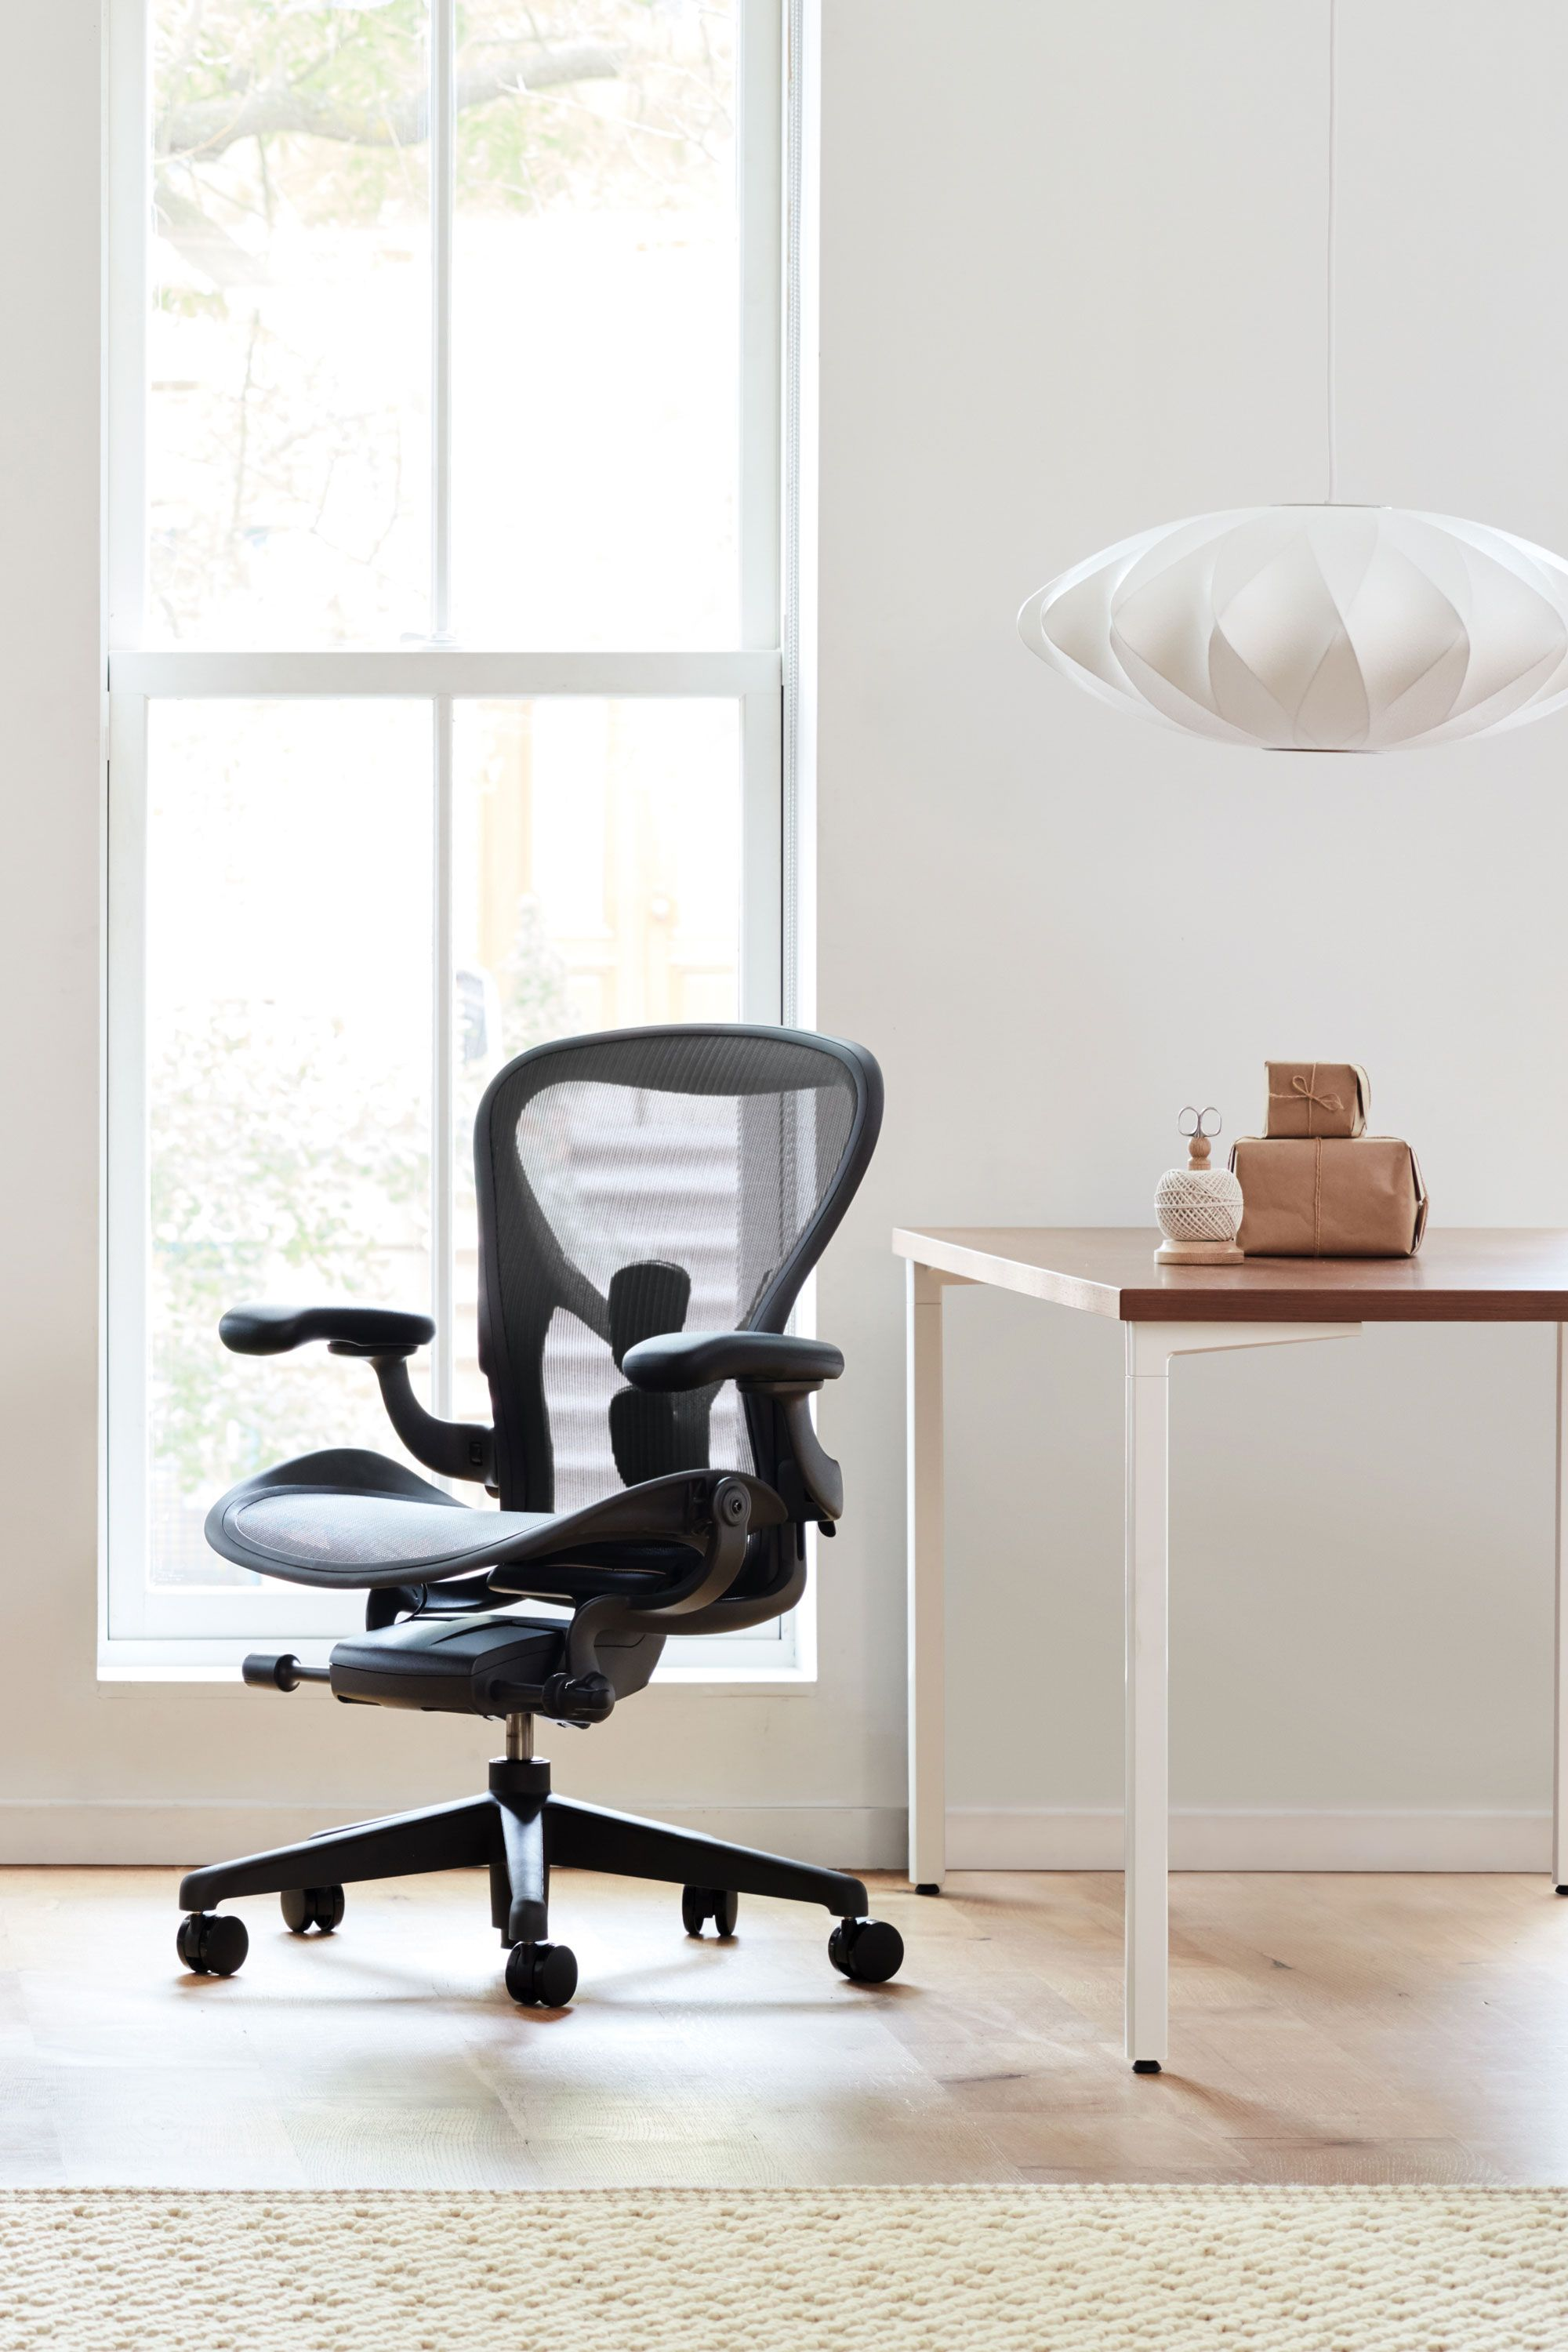 Aeron Chair Midcentury Modern Dining Chairs White Leather Dining Chairs Accent Chairs For Living Room